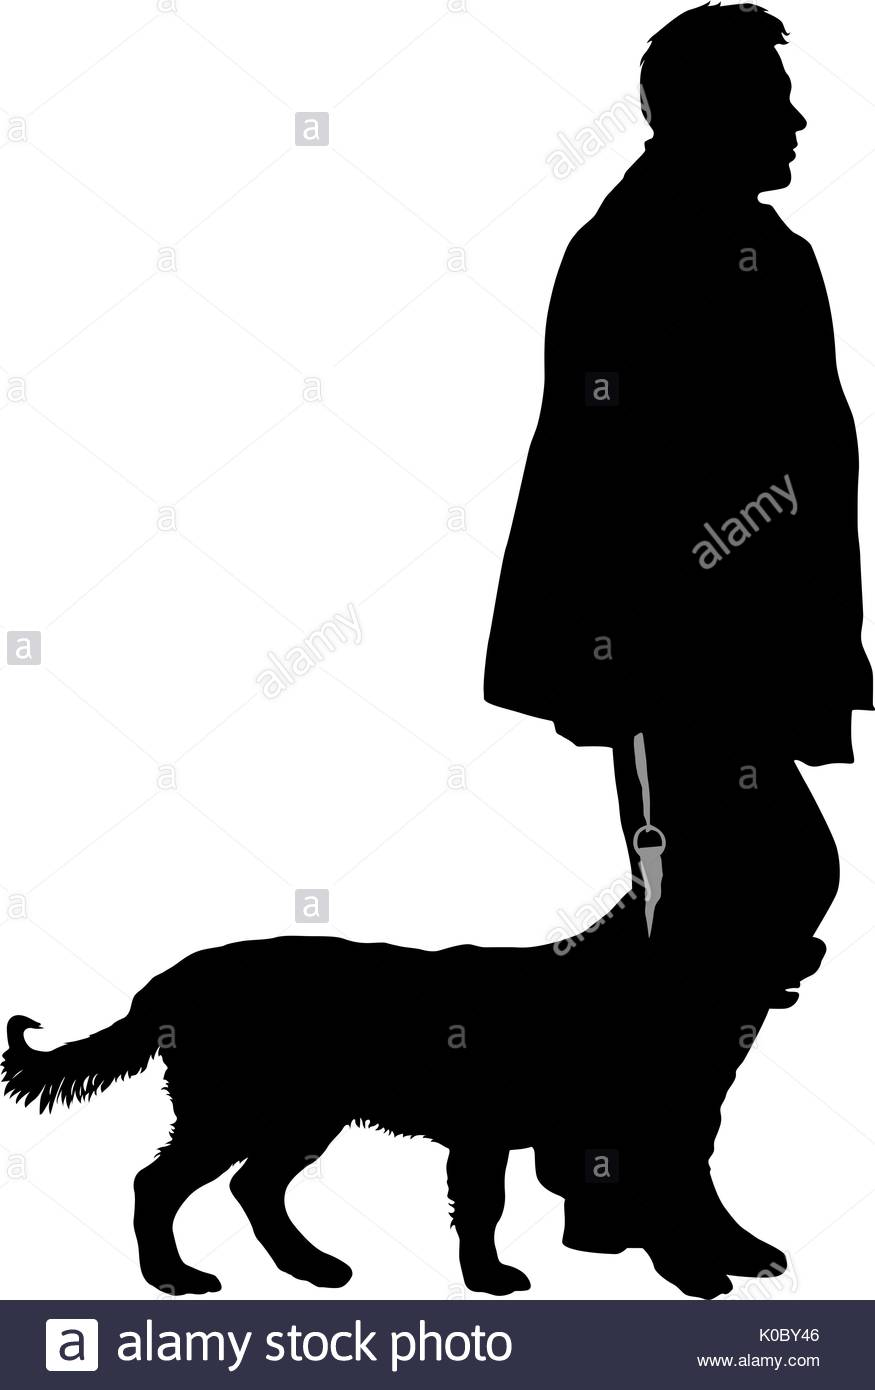 875x1390 Rottweiler Dog Black And White Stock Photos Amp Images